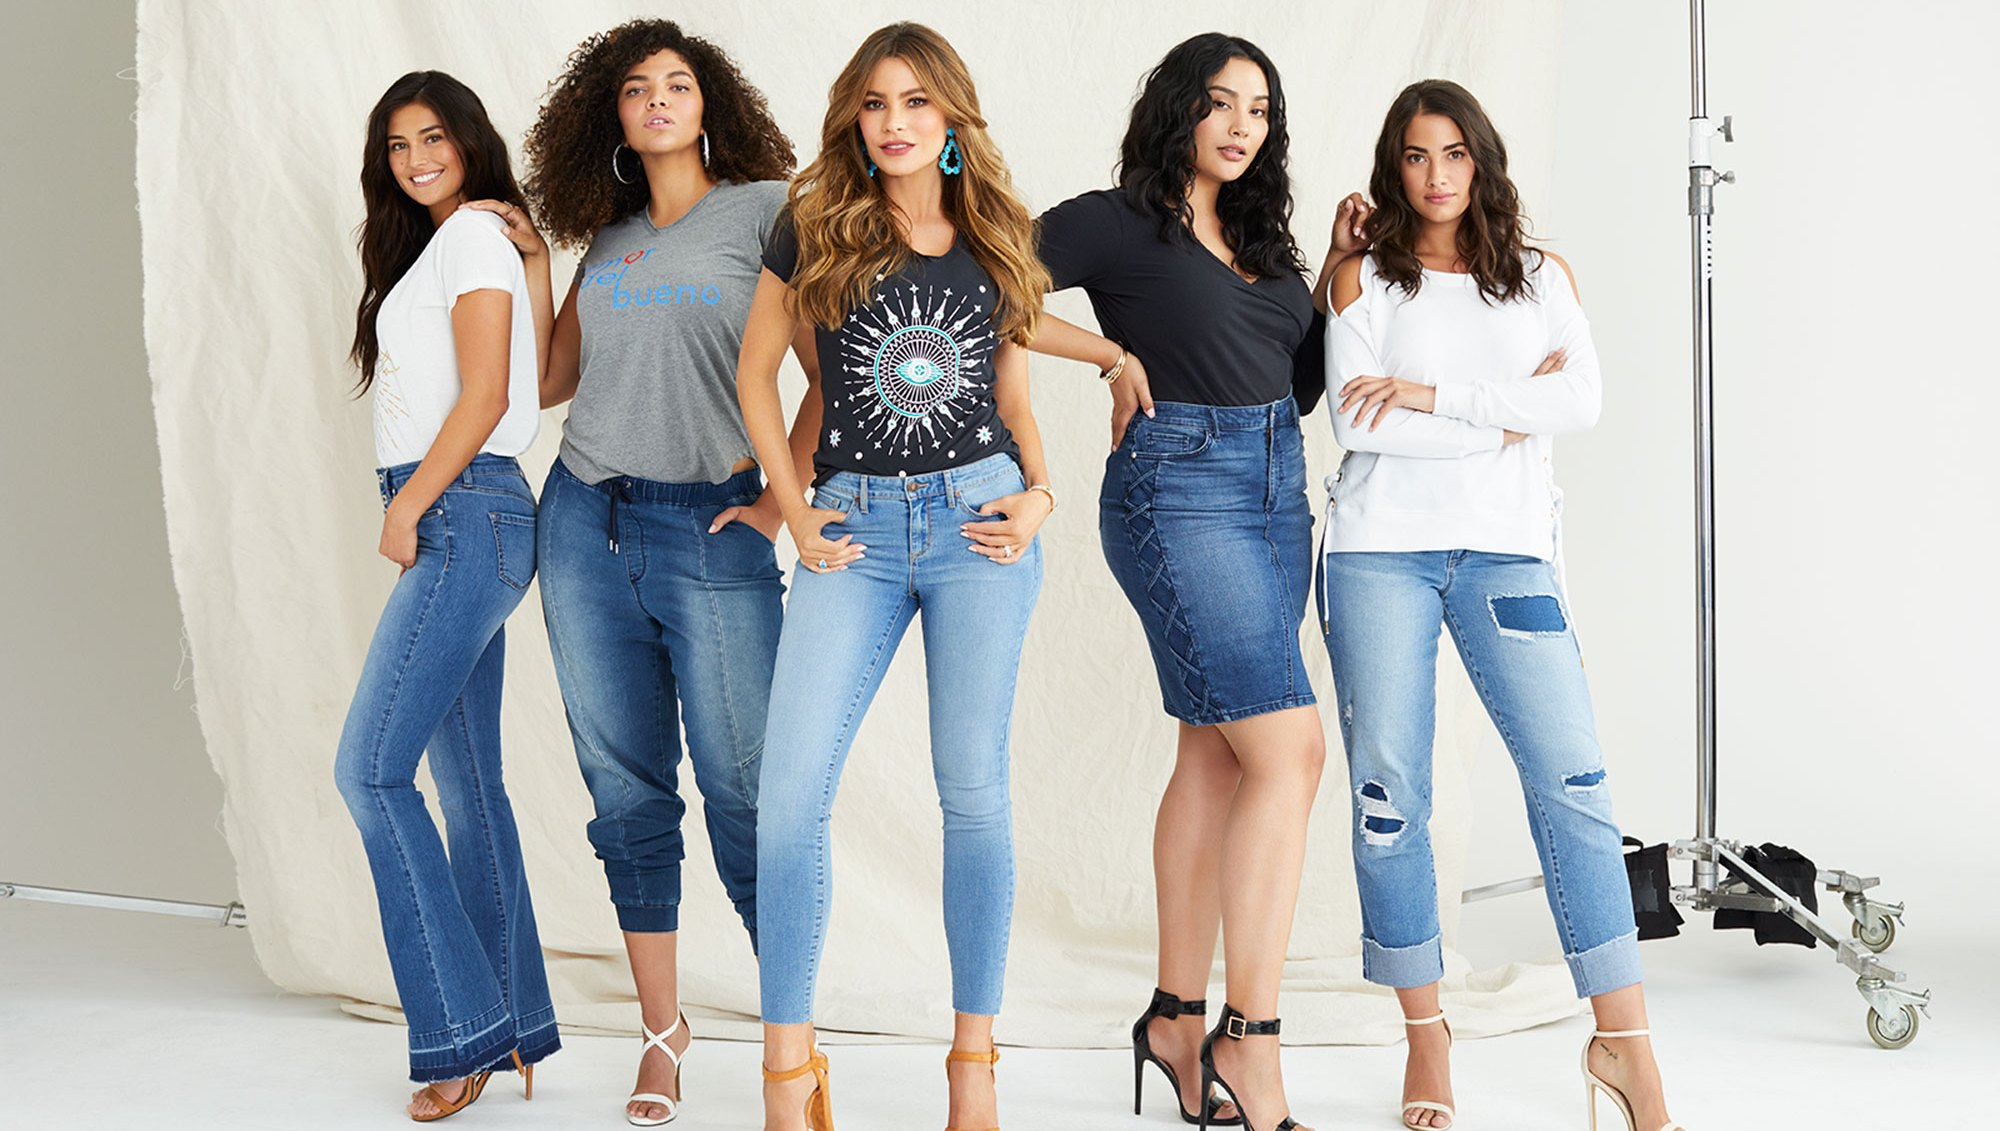 Sofia Vergara Just Launched a Denim Line and It's Affordable and Size Inclusive